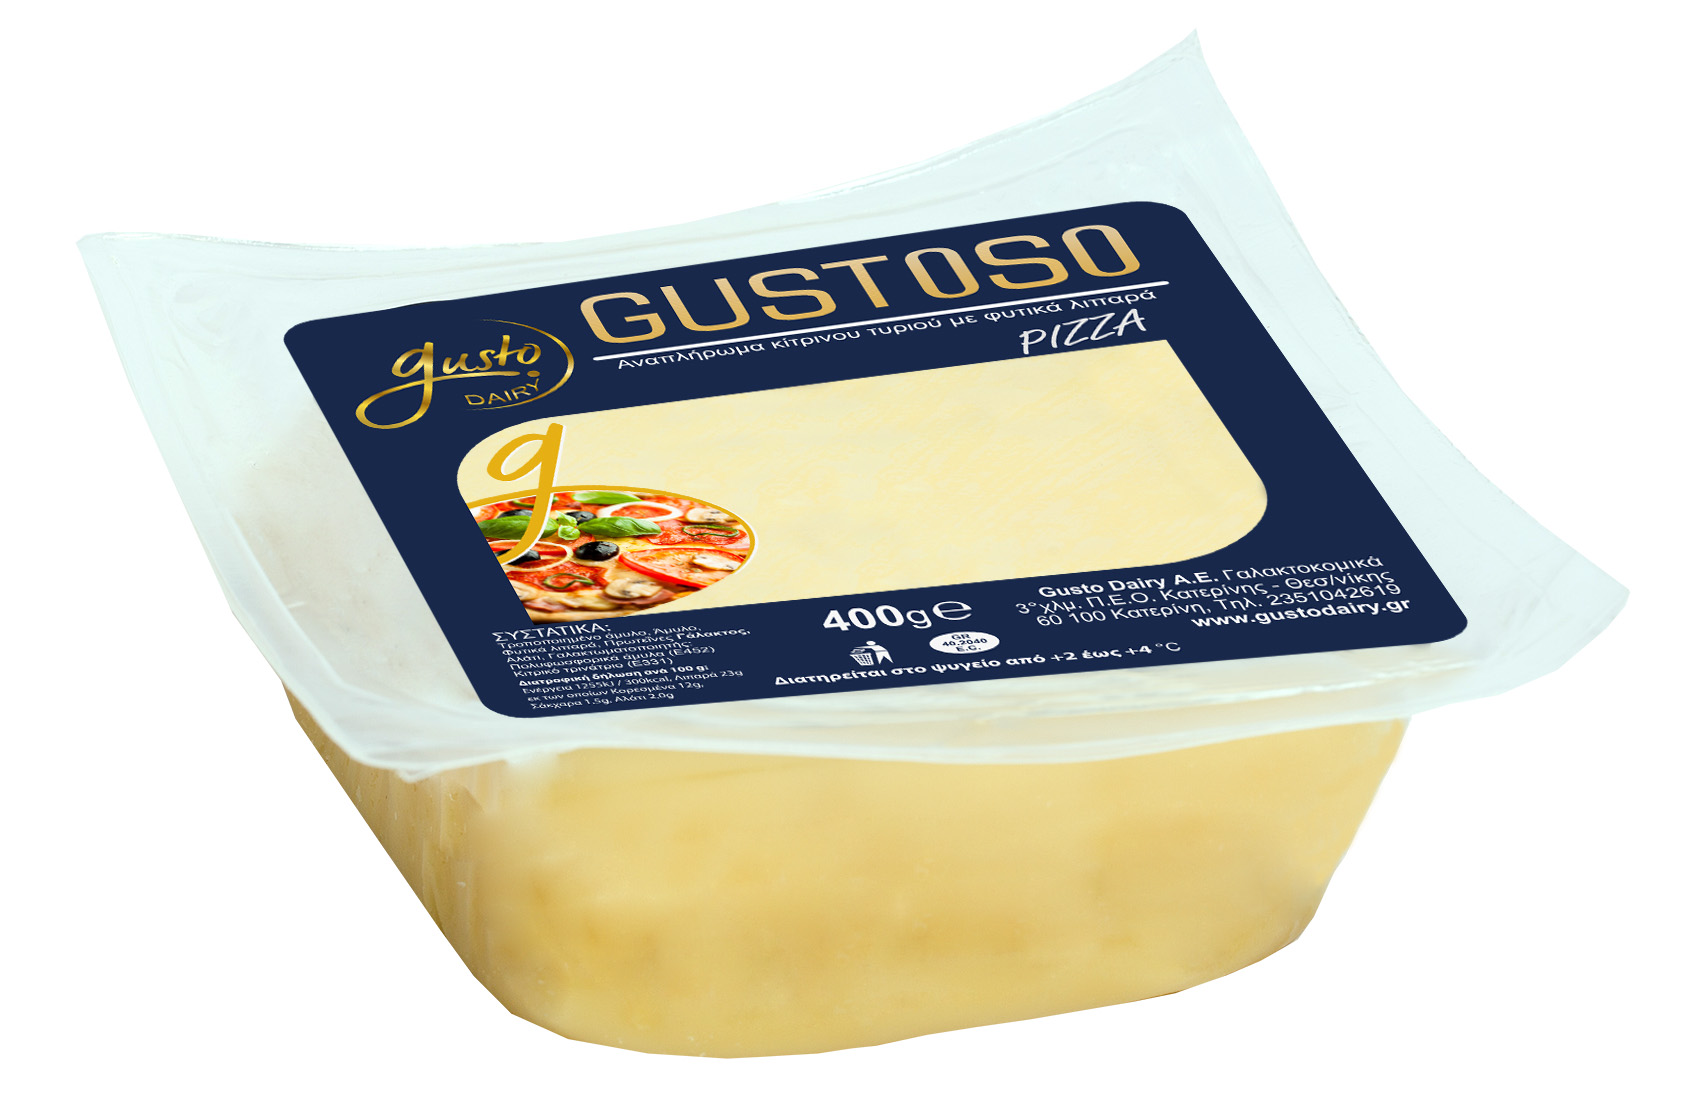 Gustoso Pizza